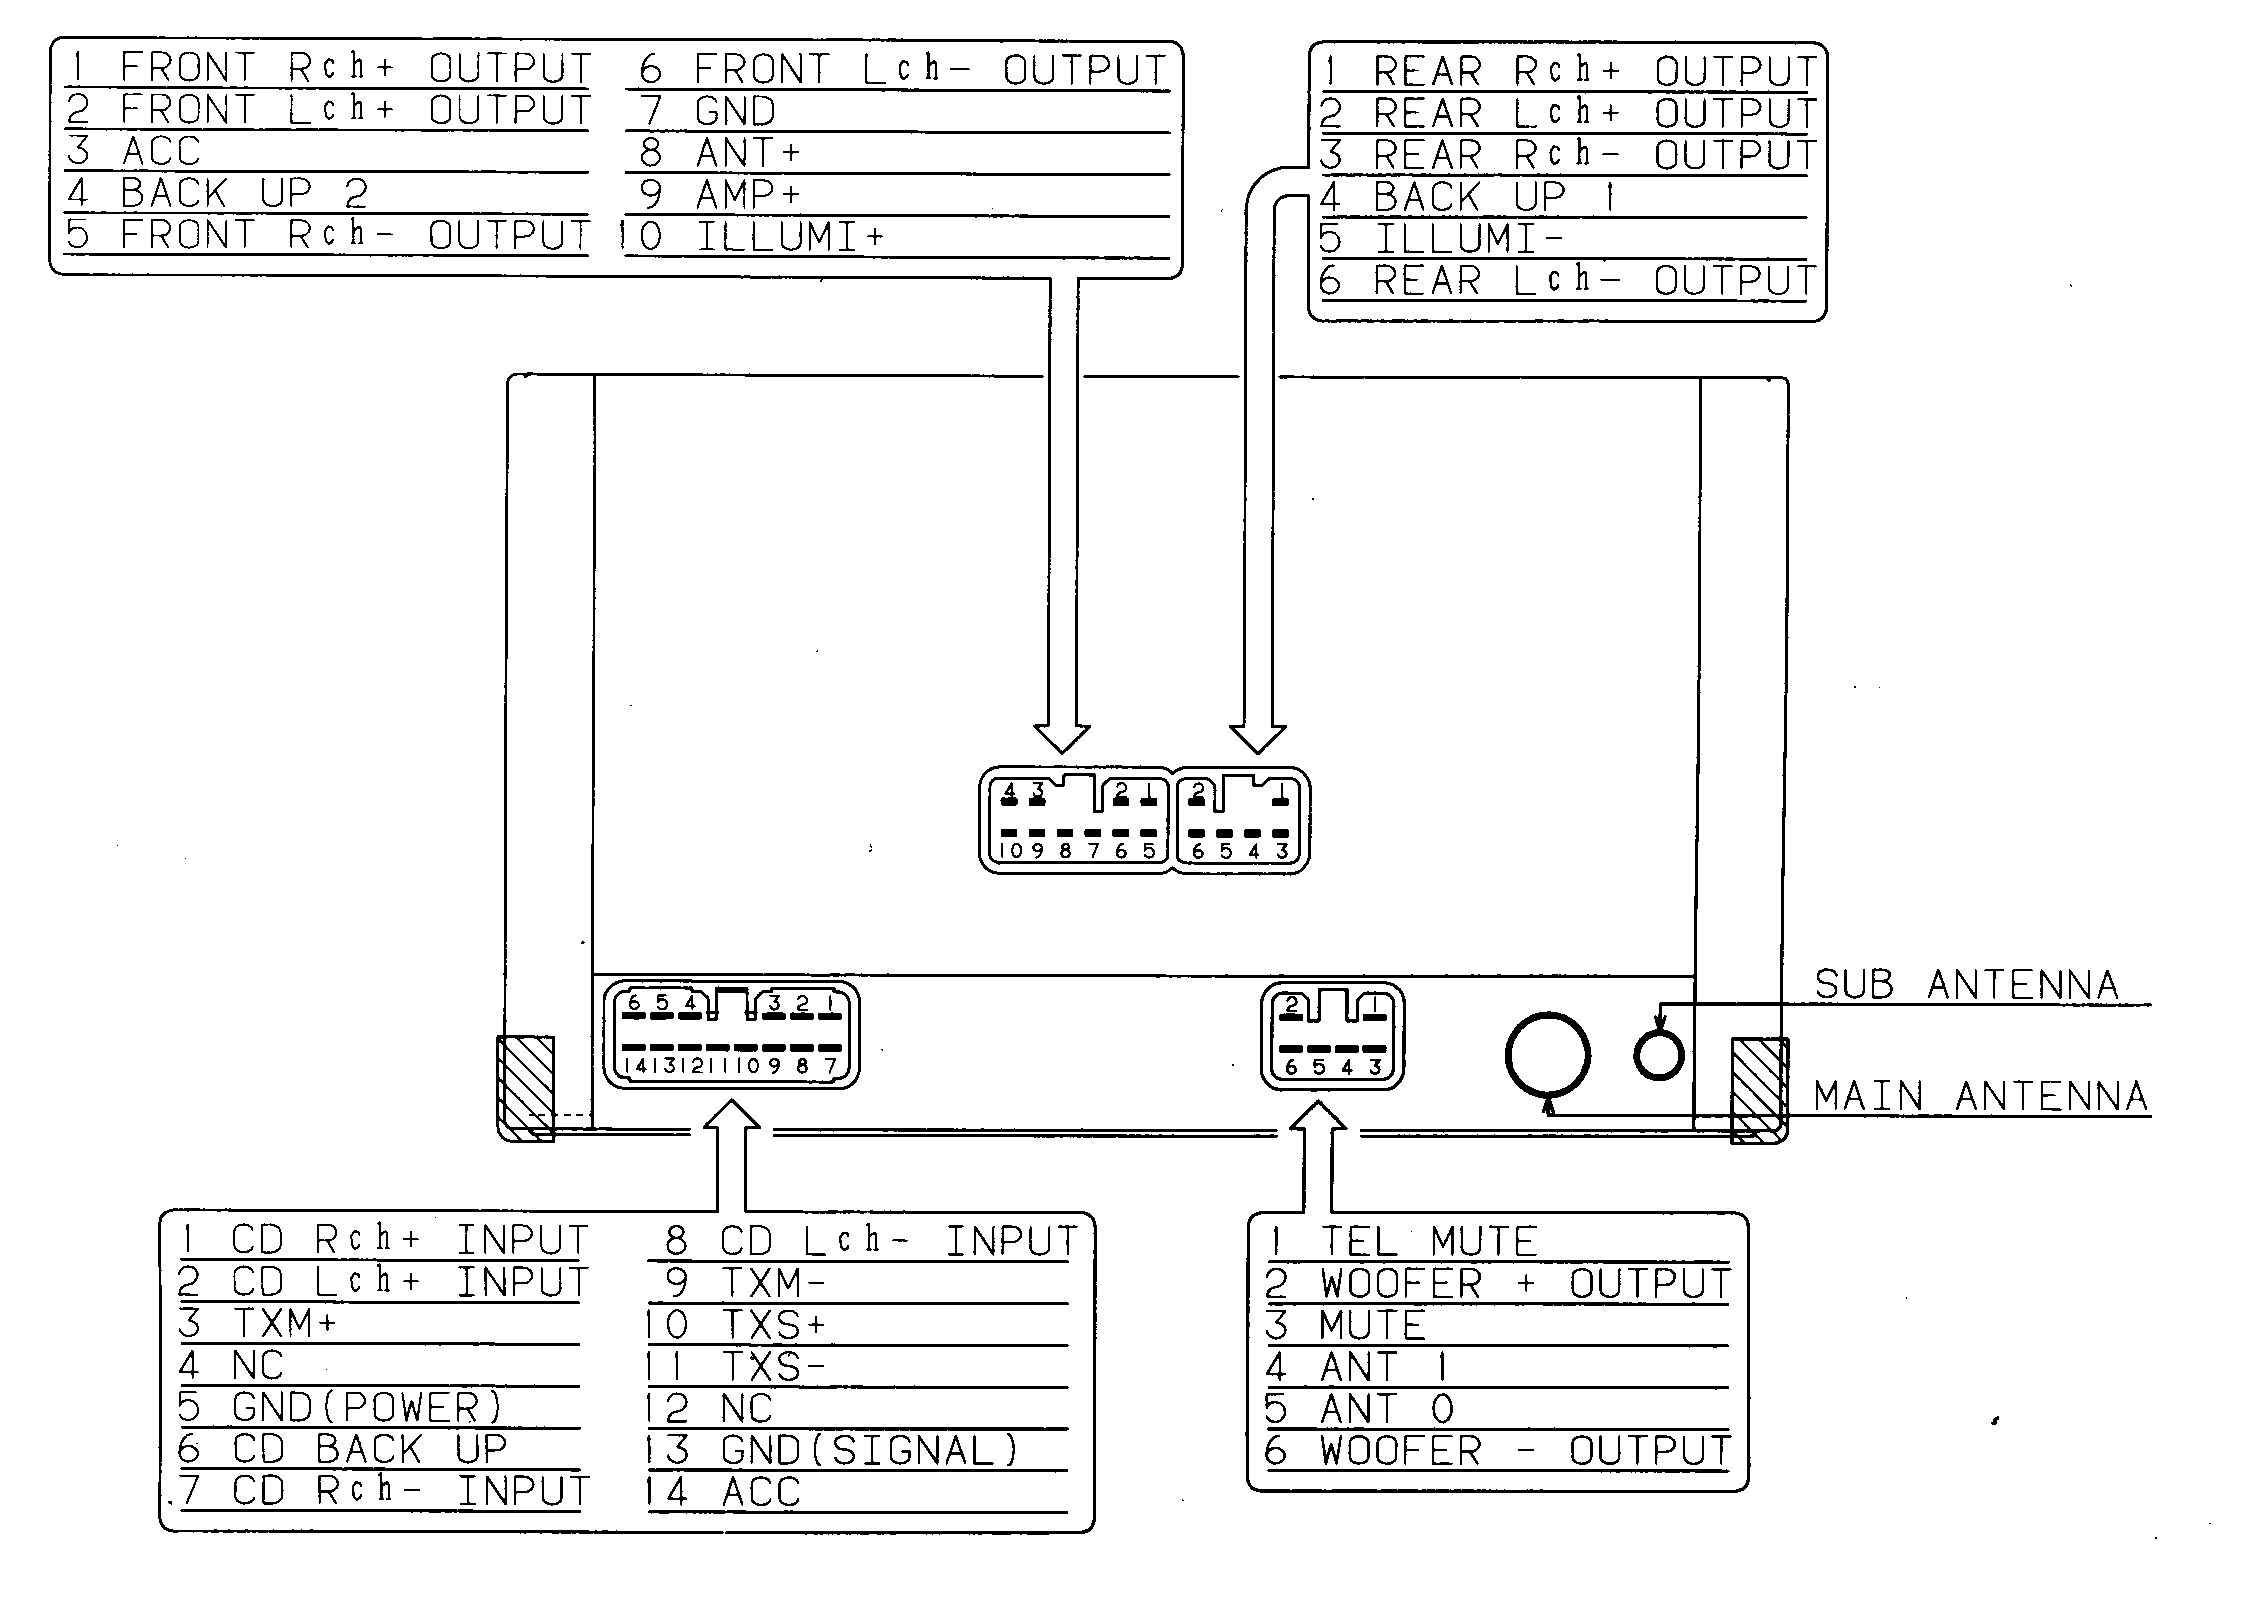 WireHarnessLexus121001 car cd player wiring diagram how to connect car stereo wires Mercury Cougar Air Conditioning Diagram at bakdesigns.co